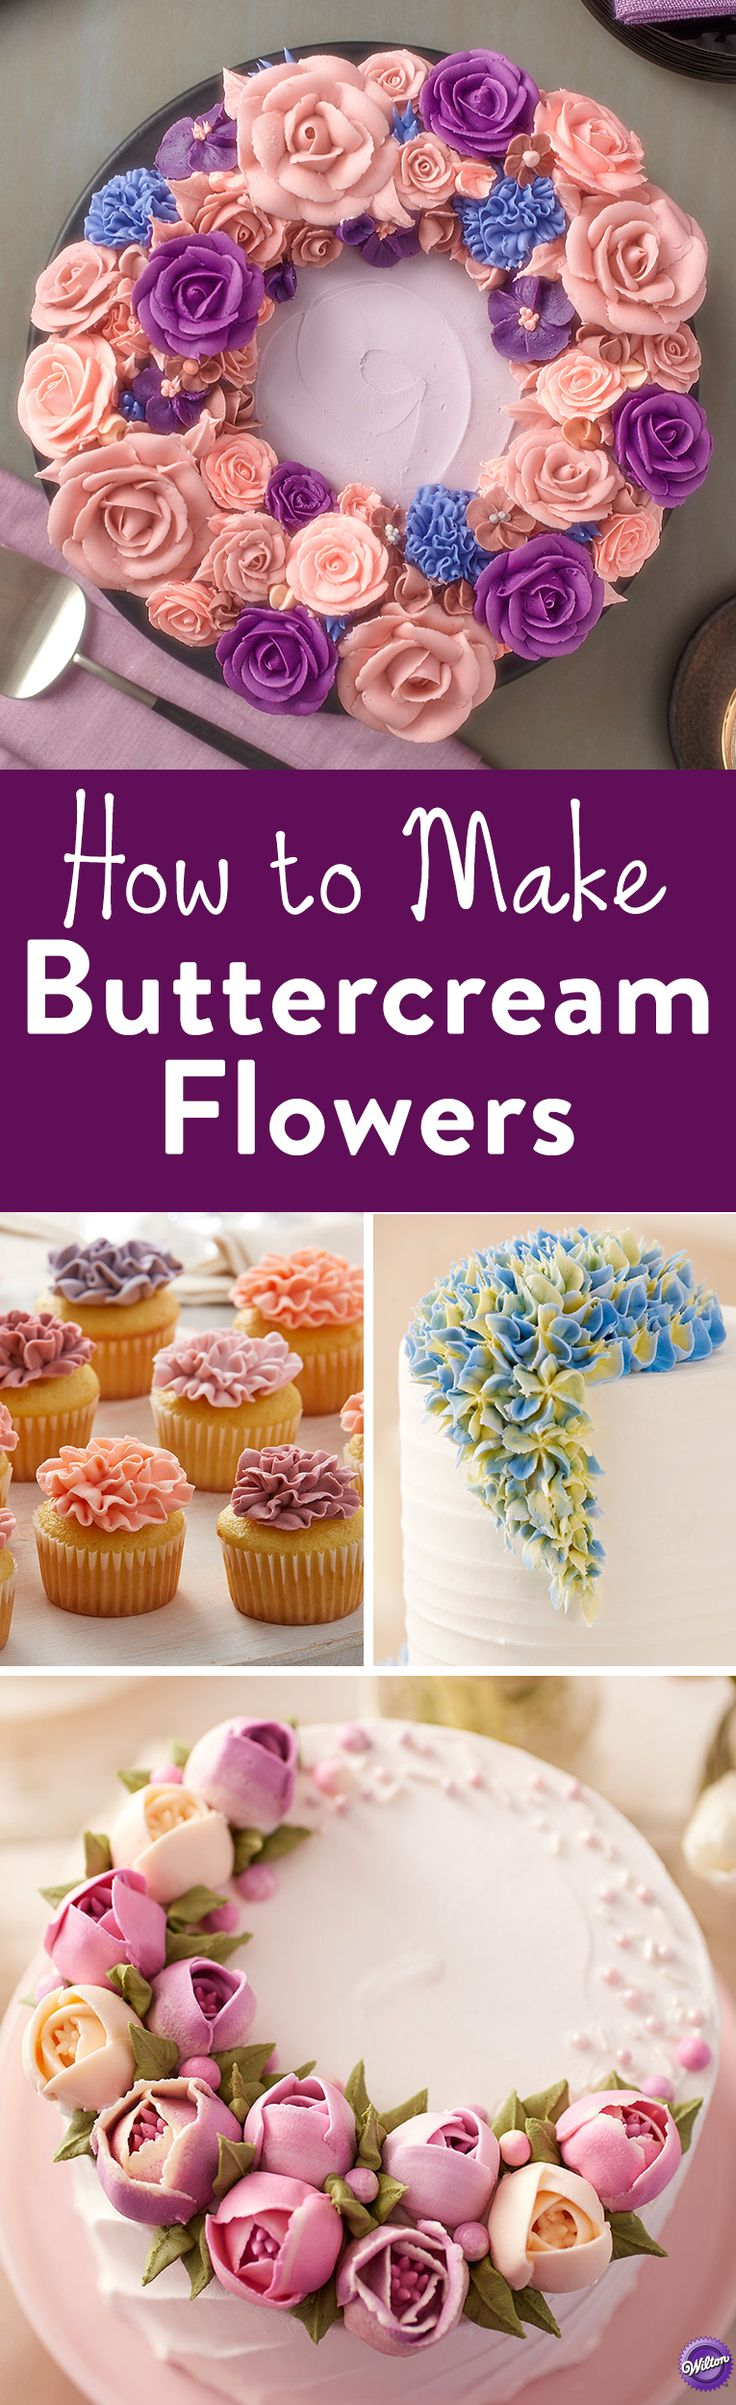 How to Make Buttercream Flowers Learn